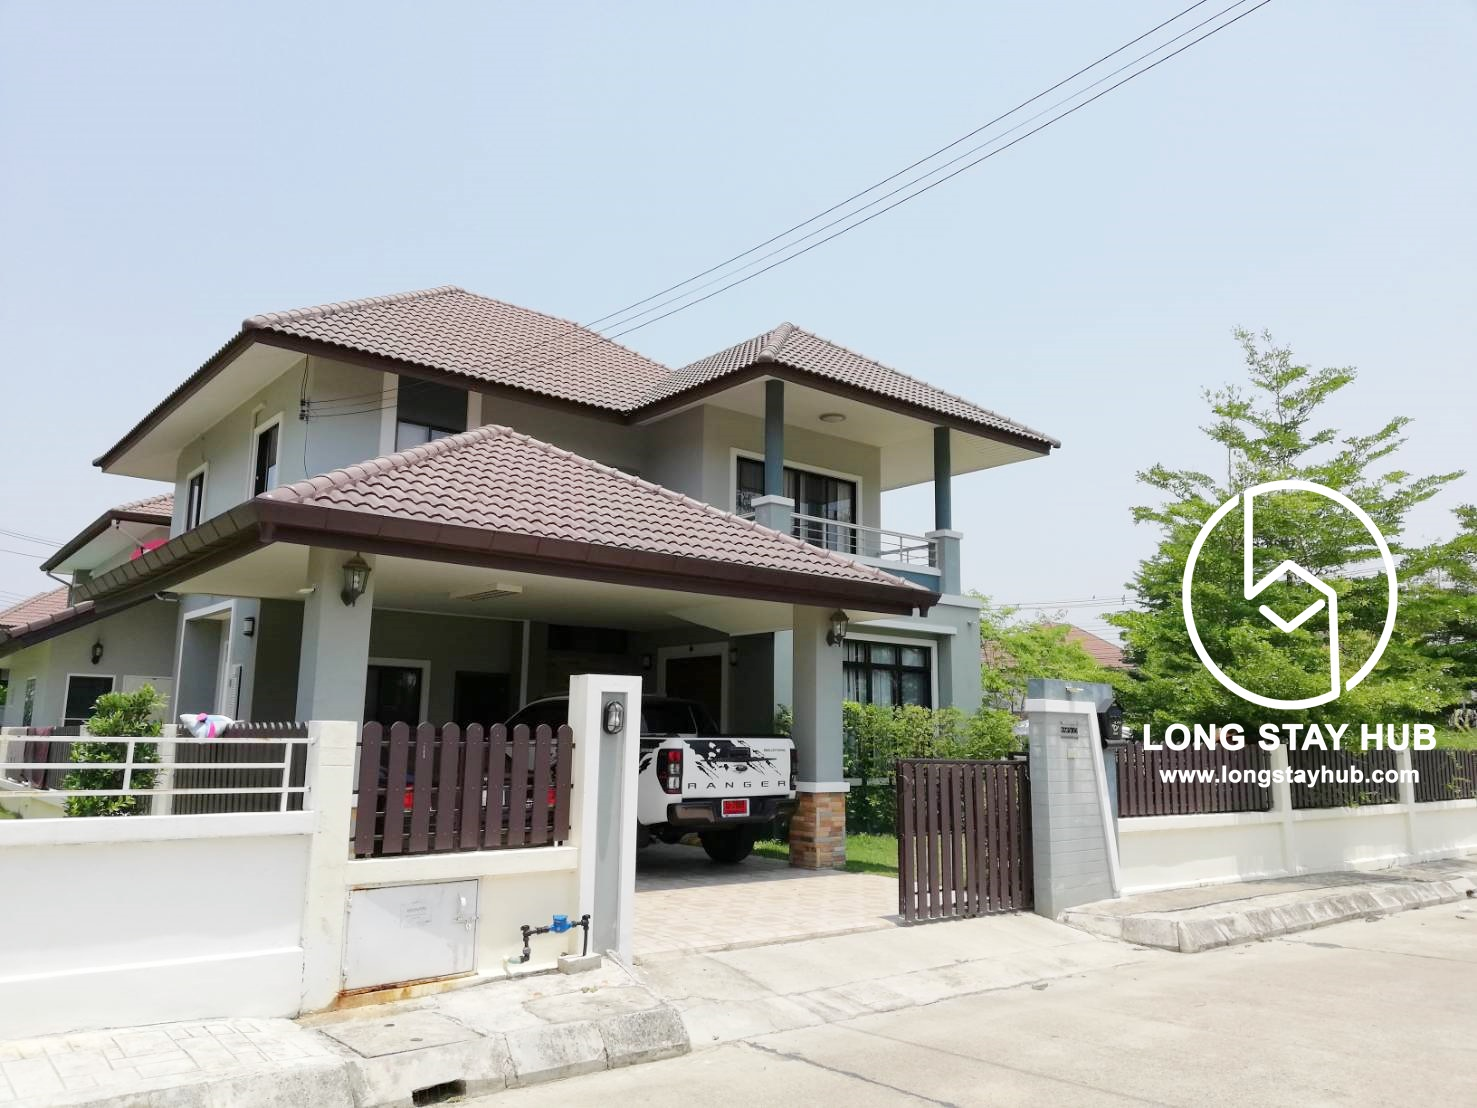 A fully furnished family style house For sale in Hang Dong area